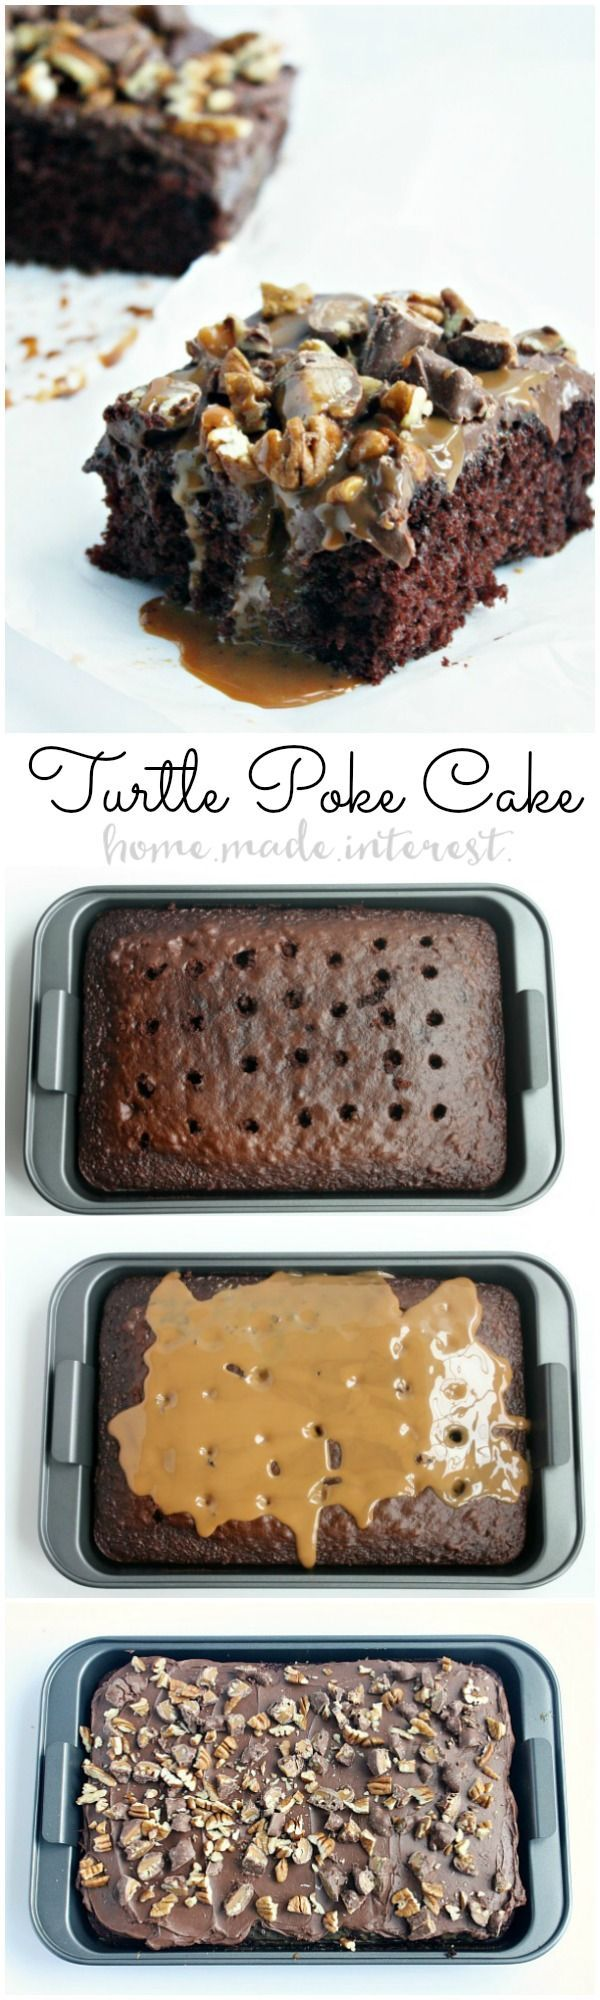 Poke cakes are such an easy cake recipe to make! This Turtle Poke Cake is…